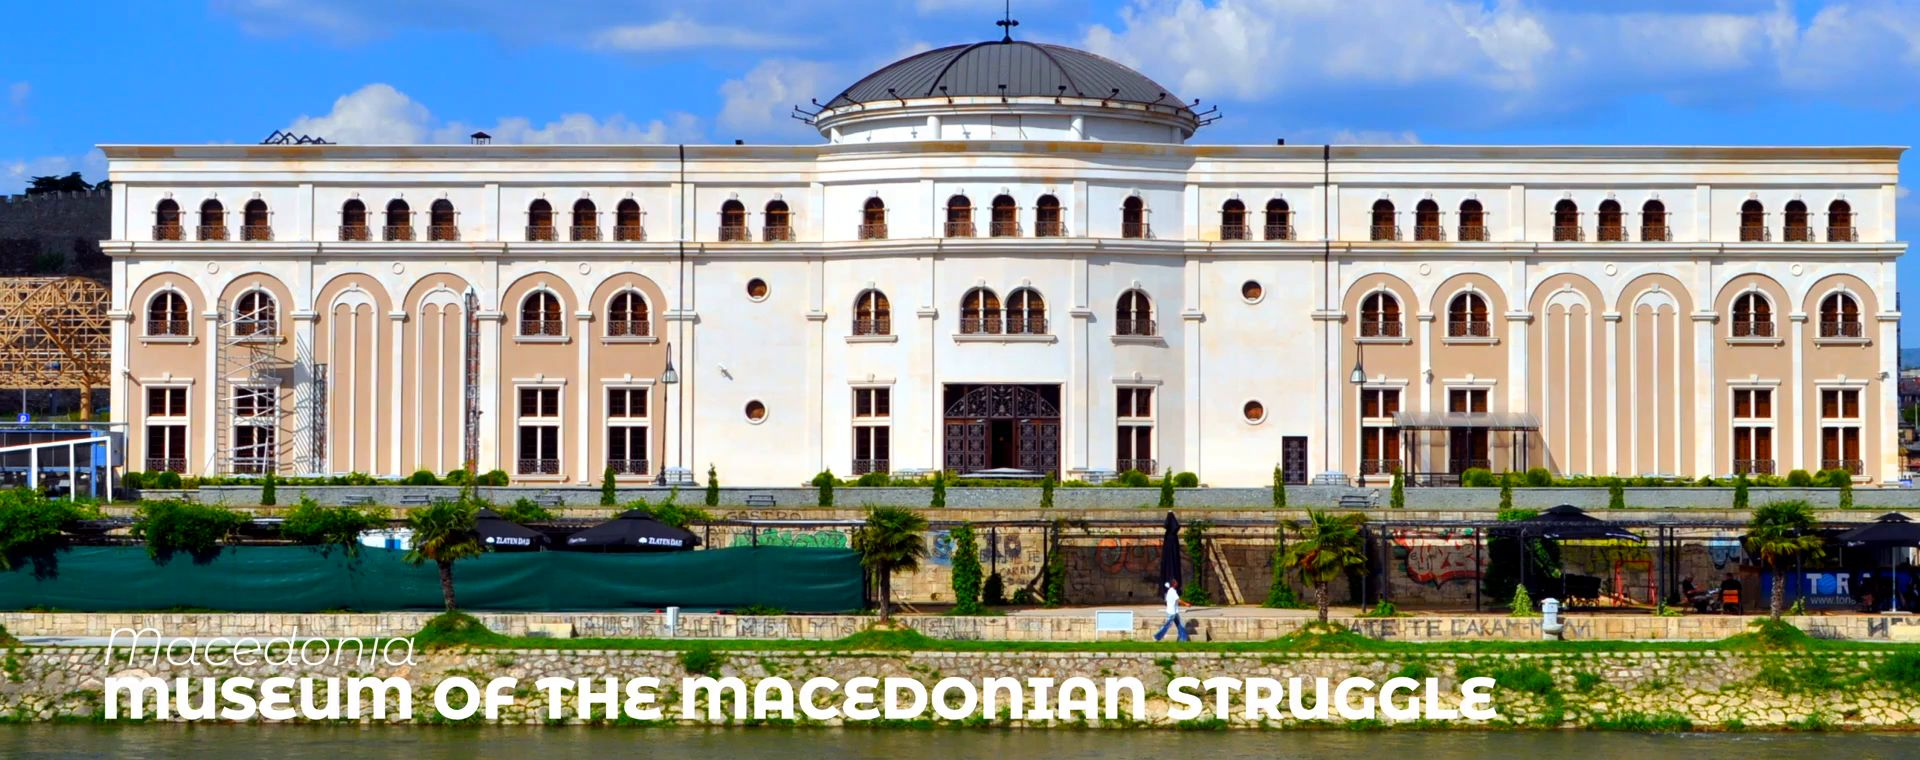 THE MUSEUM OF THE MACEDONIAN STRUGGLE